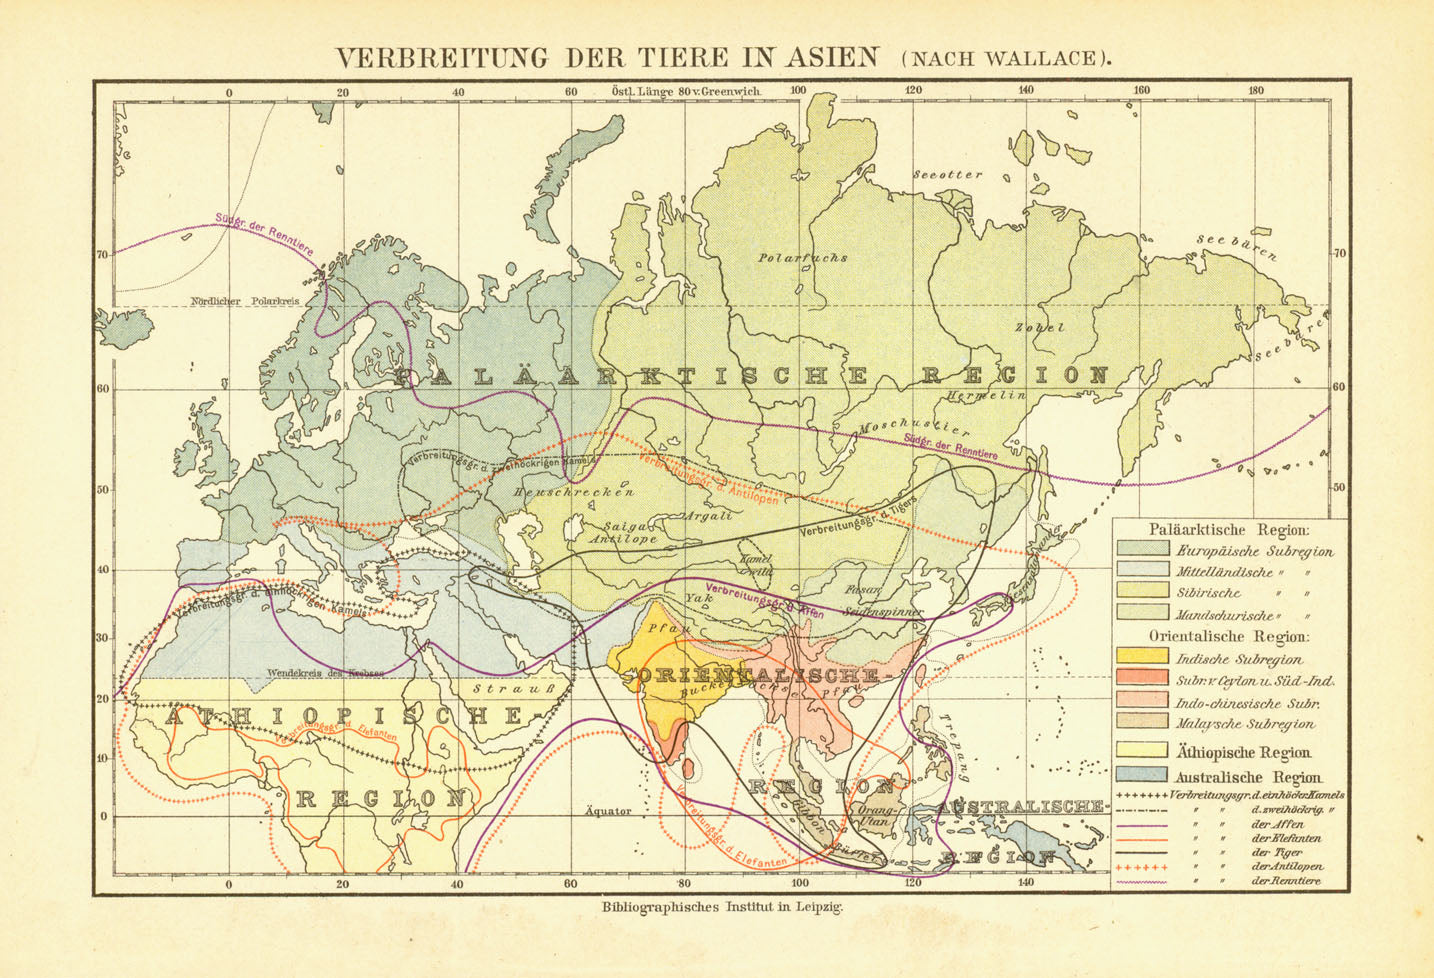 """Verbreitung der Tiere in Asien"" ( nach Wallace )  Interesting map showing the distribution of animals such as tigers, reindeer, elephants, monkeys and others in Asia. Published 1895."